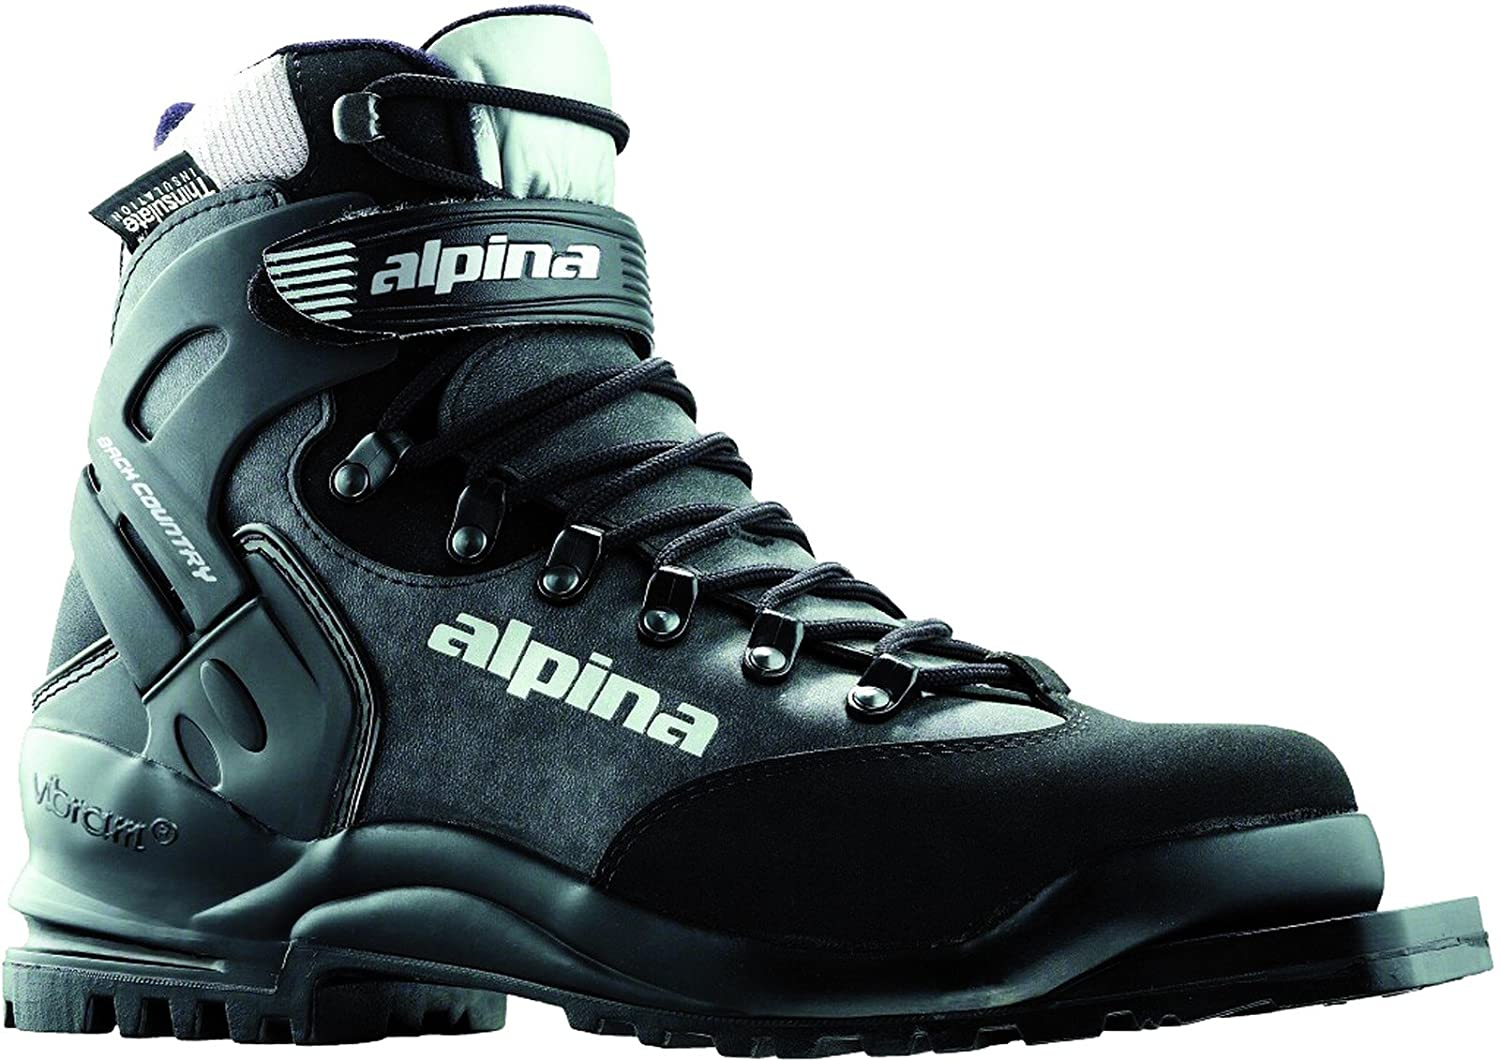 Amazon.com : Alpina BC 1575 Back-Country Nordic Cross-Country Ski ...